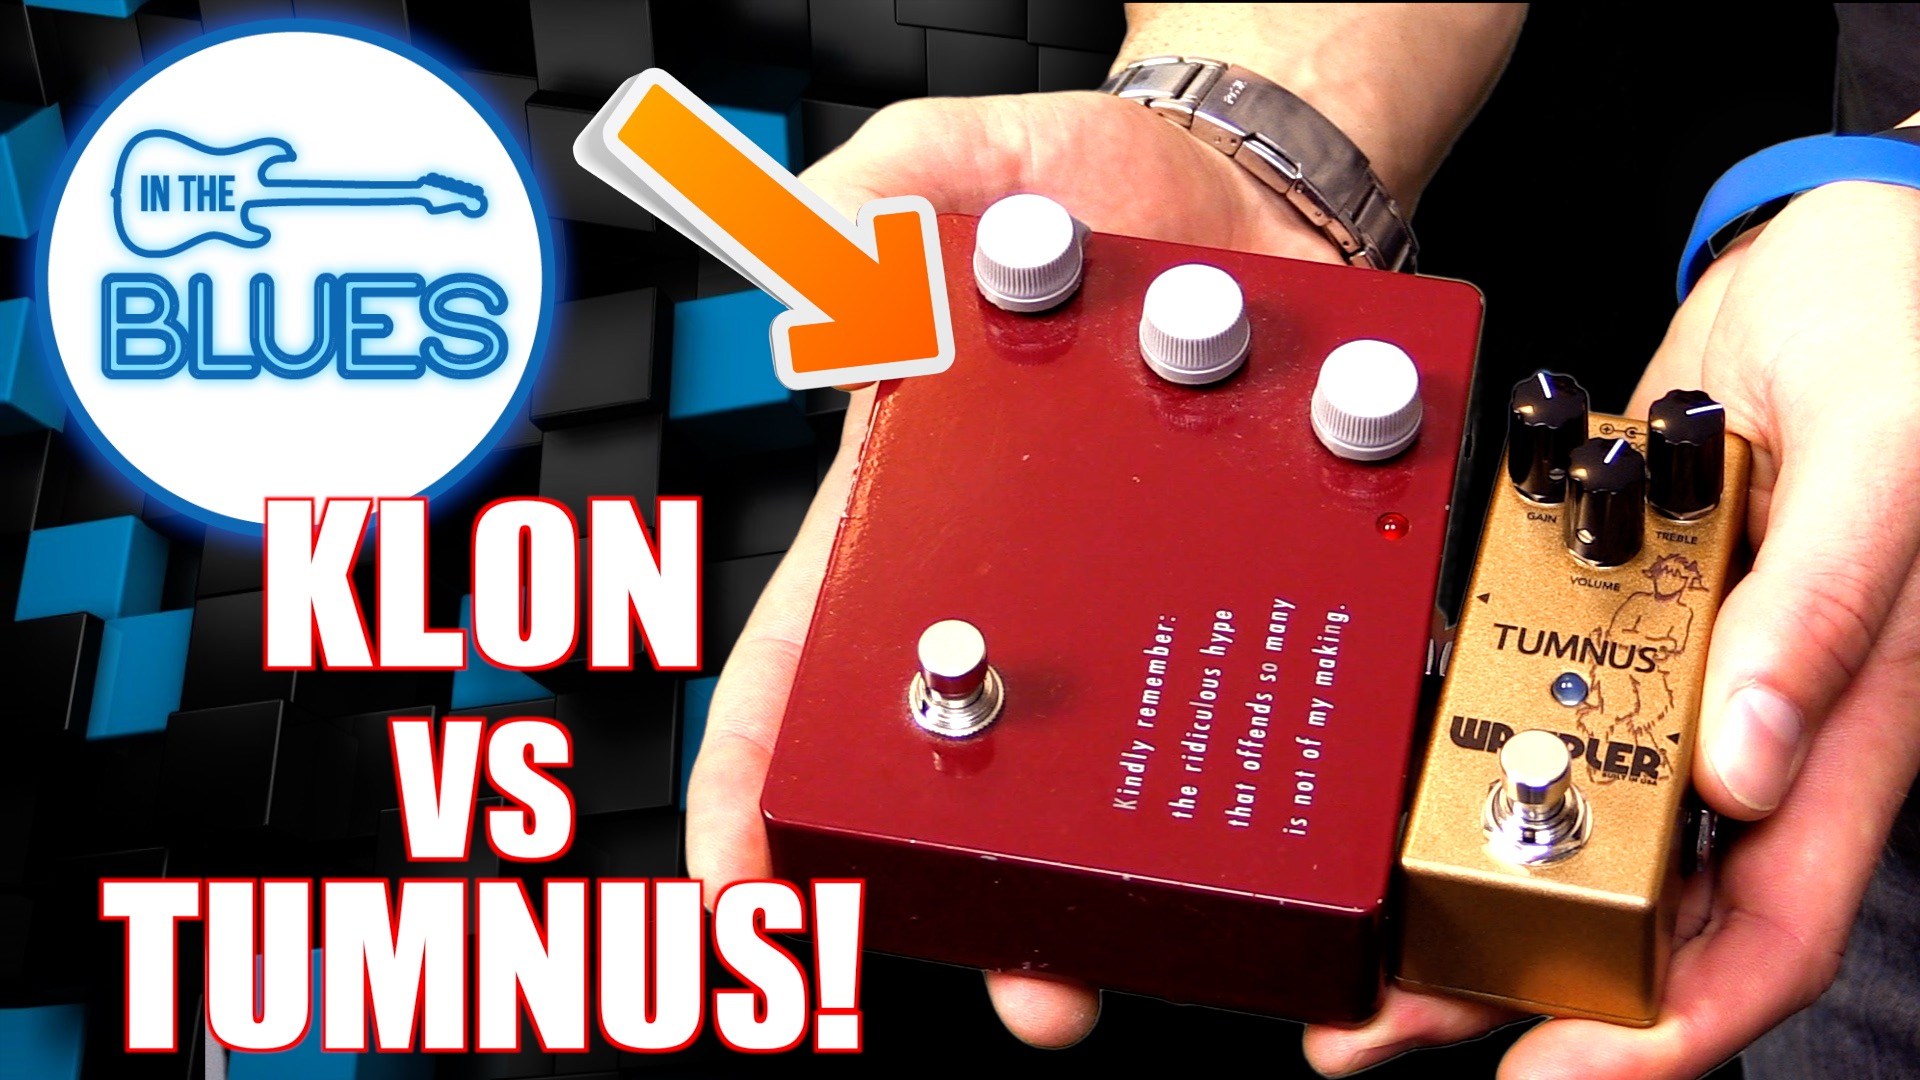 The Klon KTR versus the Wampler Tumnus